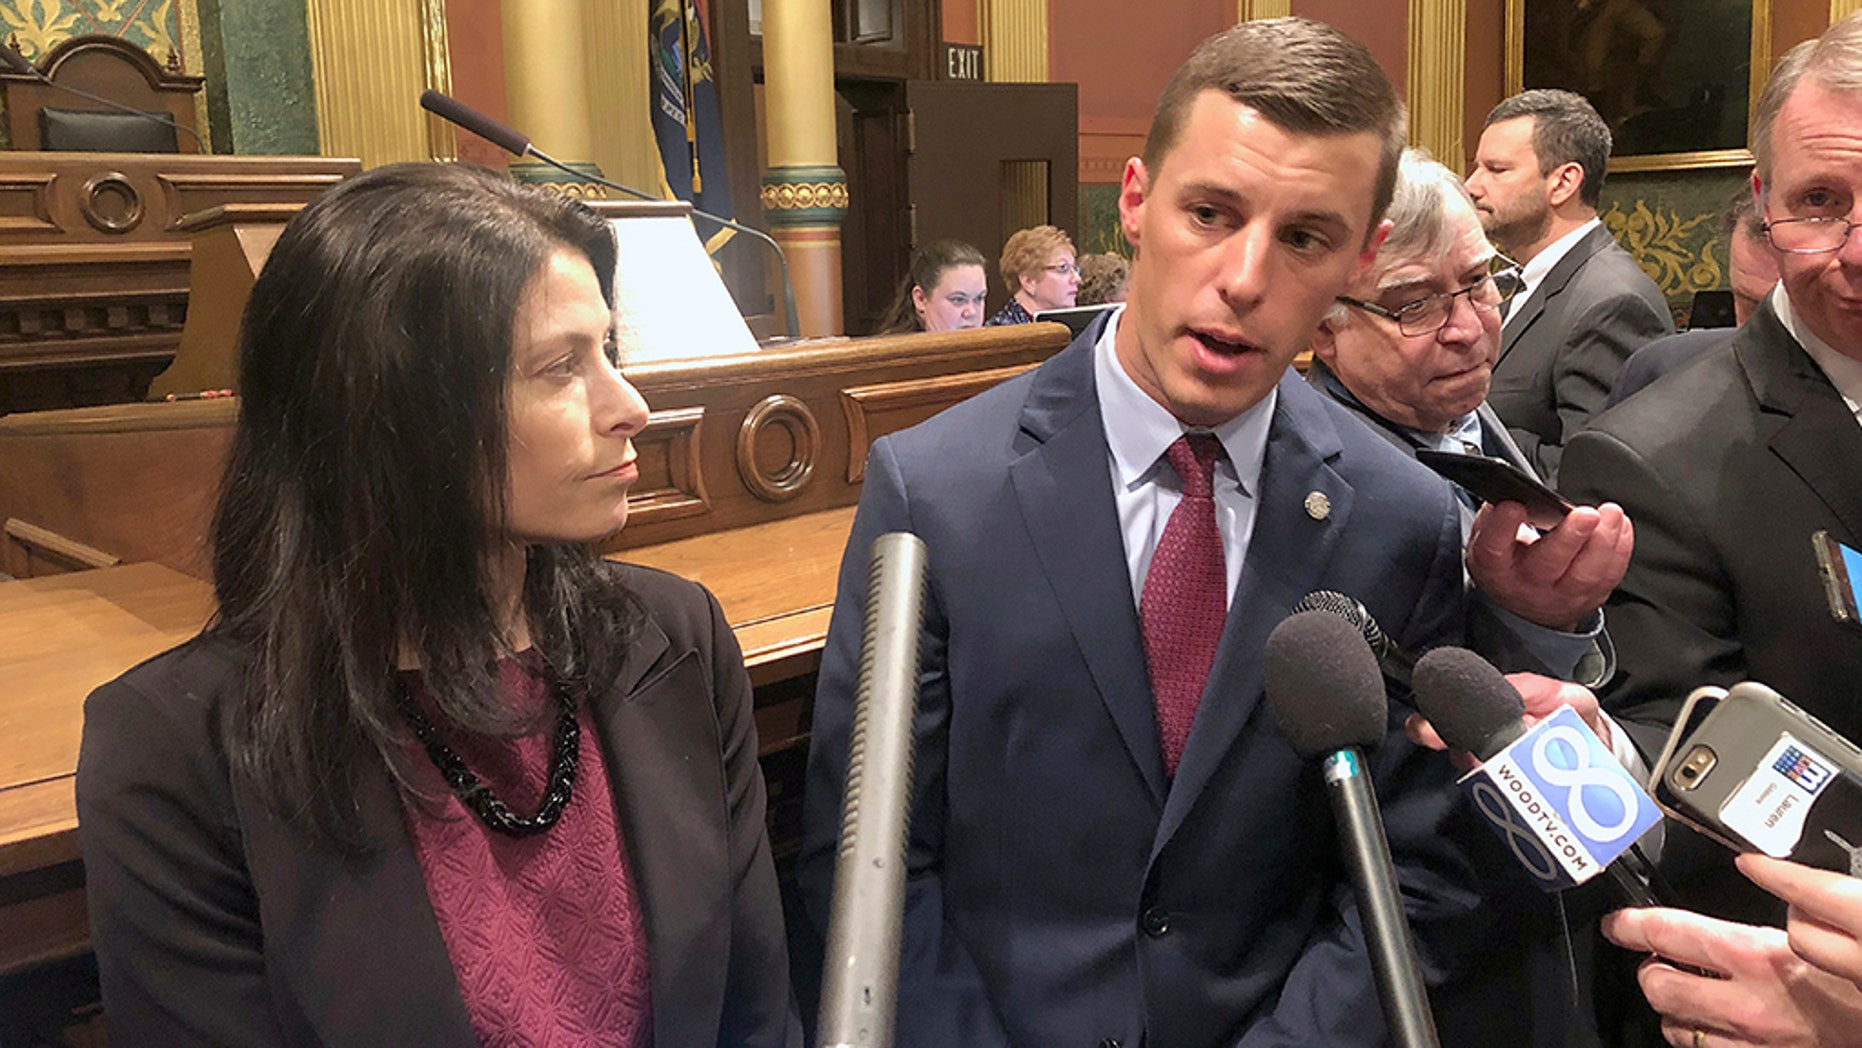 New state House Speaker Lee Chatfield (left), a Republican, sent President Trump a formal invitation to deliver the State of the Union address from the House chamber in Michigan's state capitol.